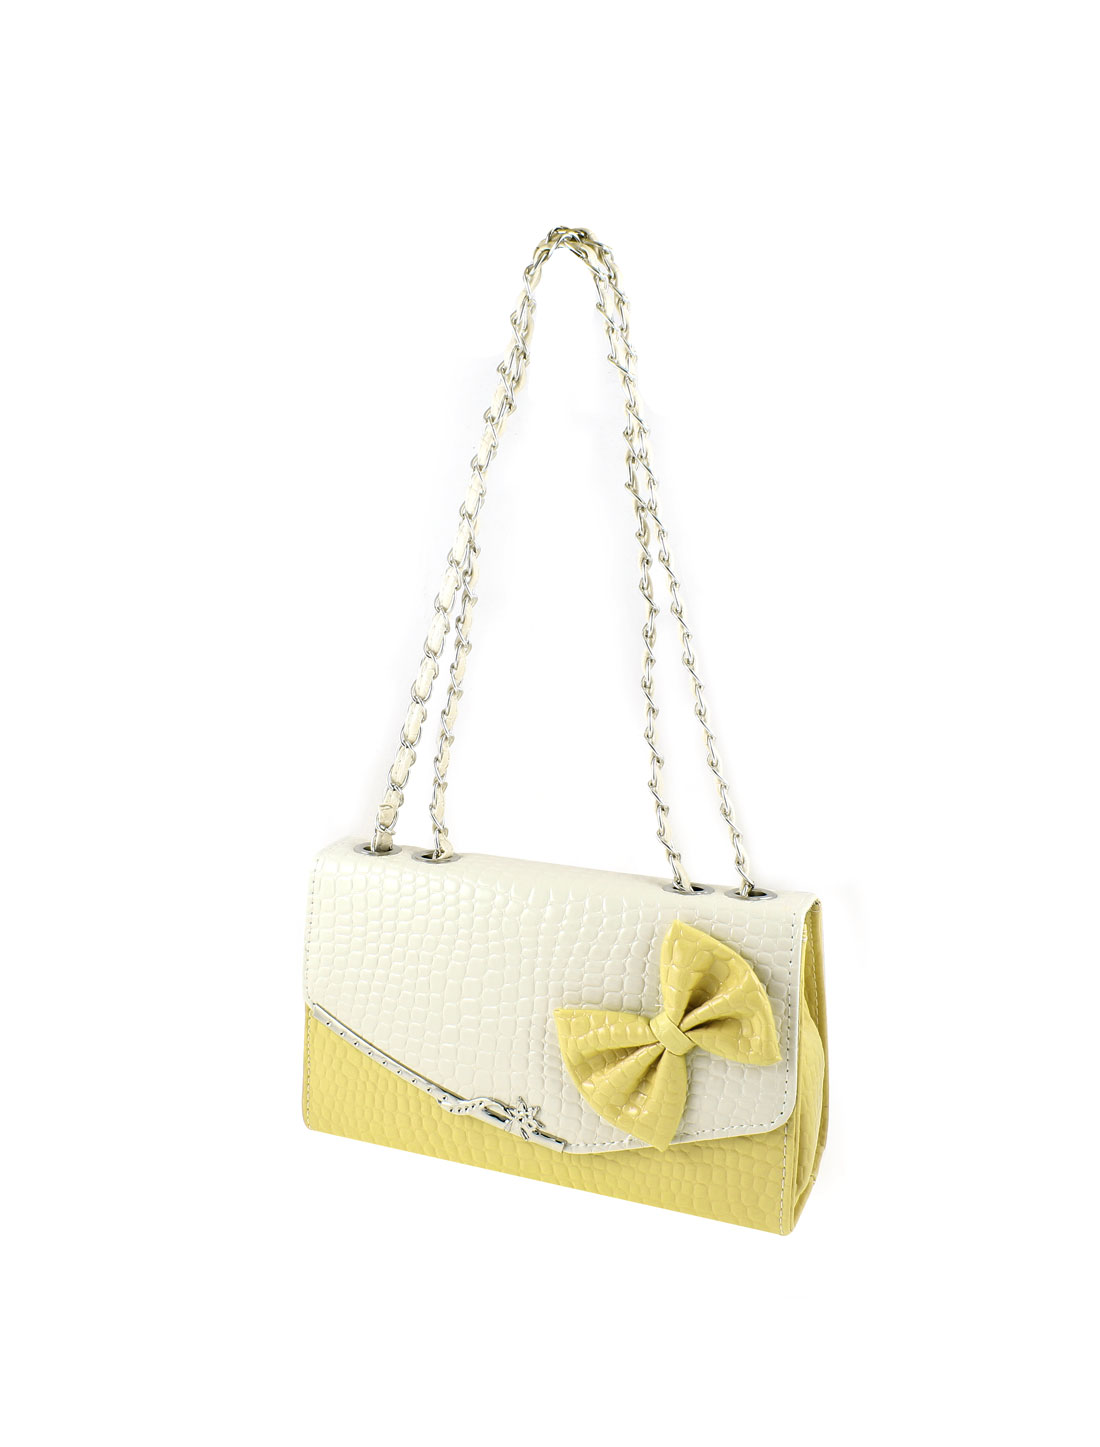 Yellow Beige Alligator Print Faux Leather Chain Shoulder Bag Purse for Ladies